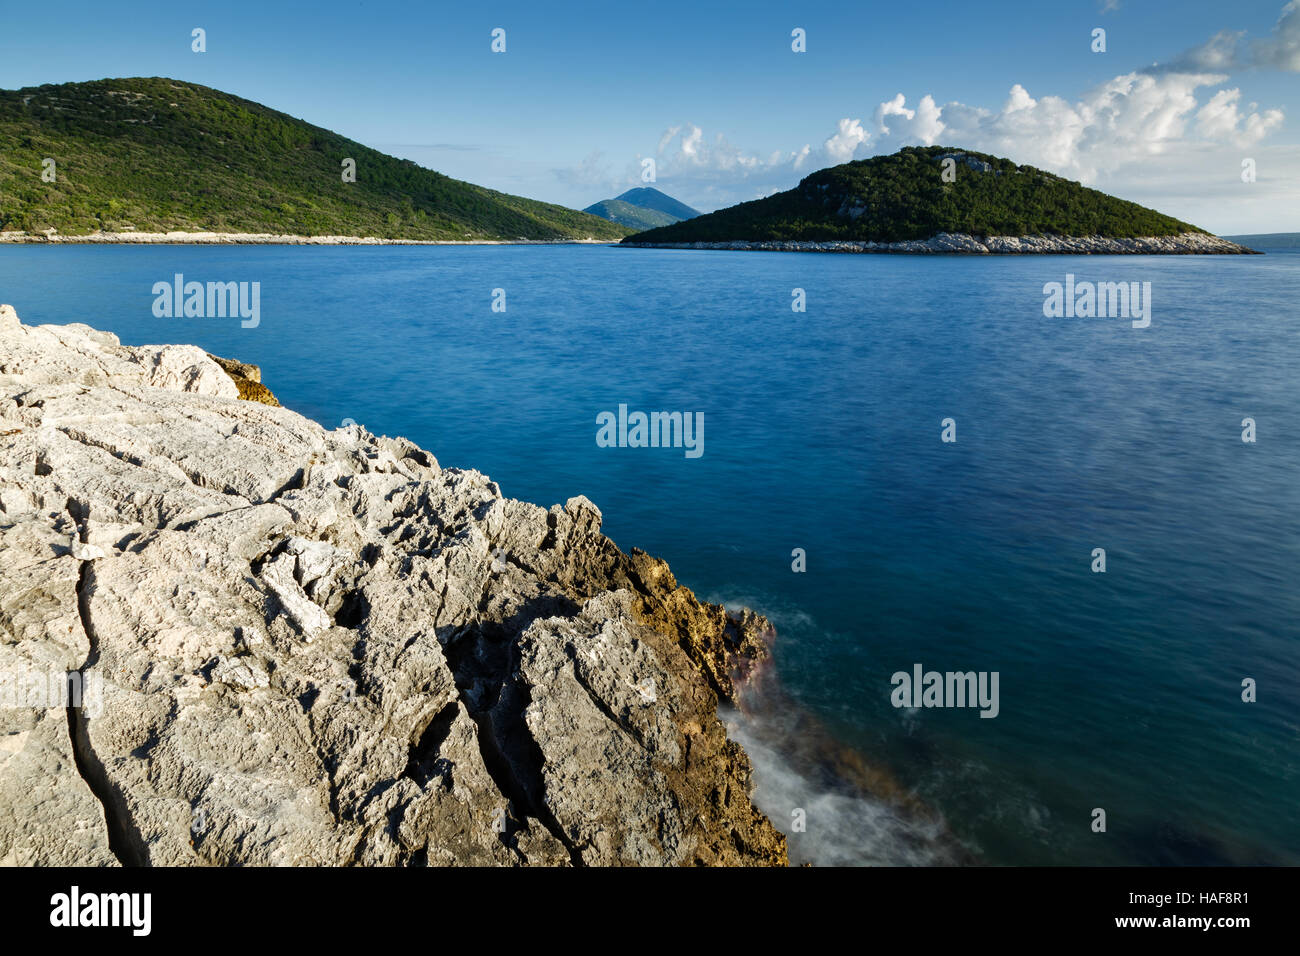 Morning over the rocky coastal area of Cunski with a view to the island of Veli Osir and Osorscica mountain in the Stock Photo